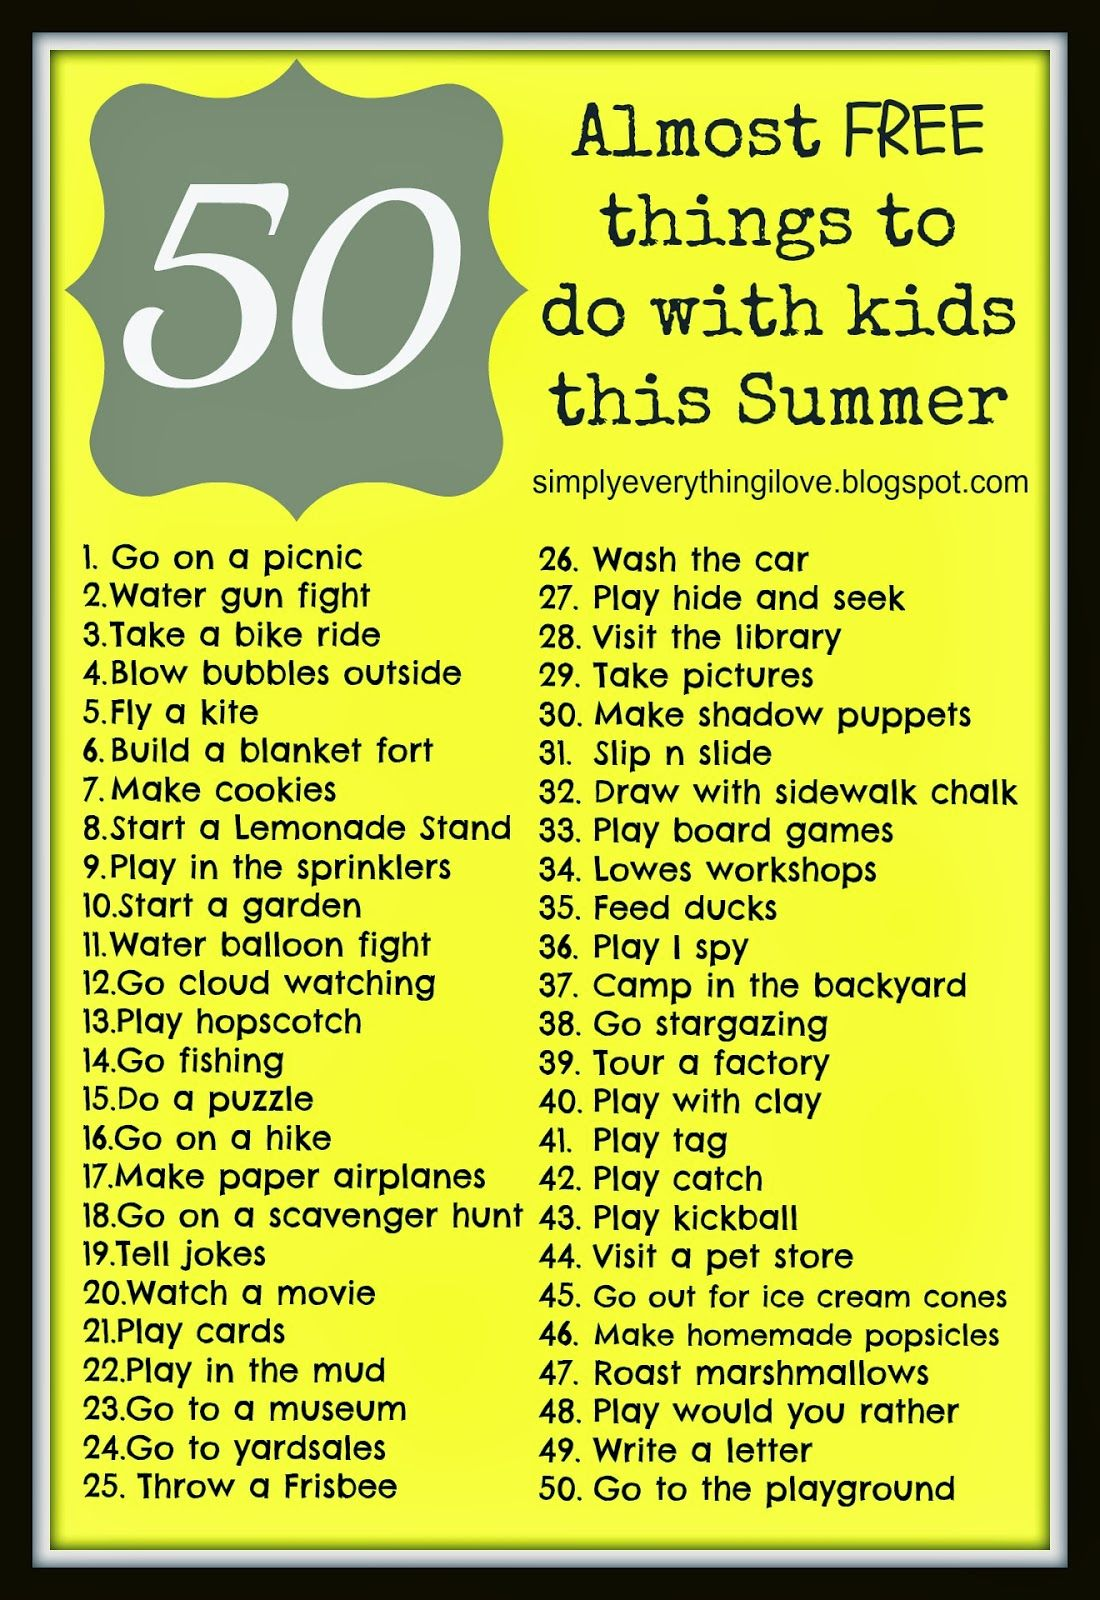 50 almost free things to do with kids this summer free printable kids pinterest free. Black Bedroom Furniture Sets. Home Design Ideas